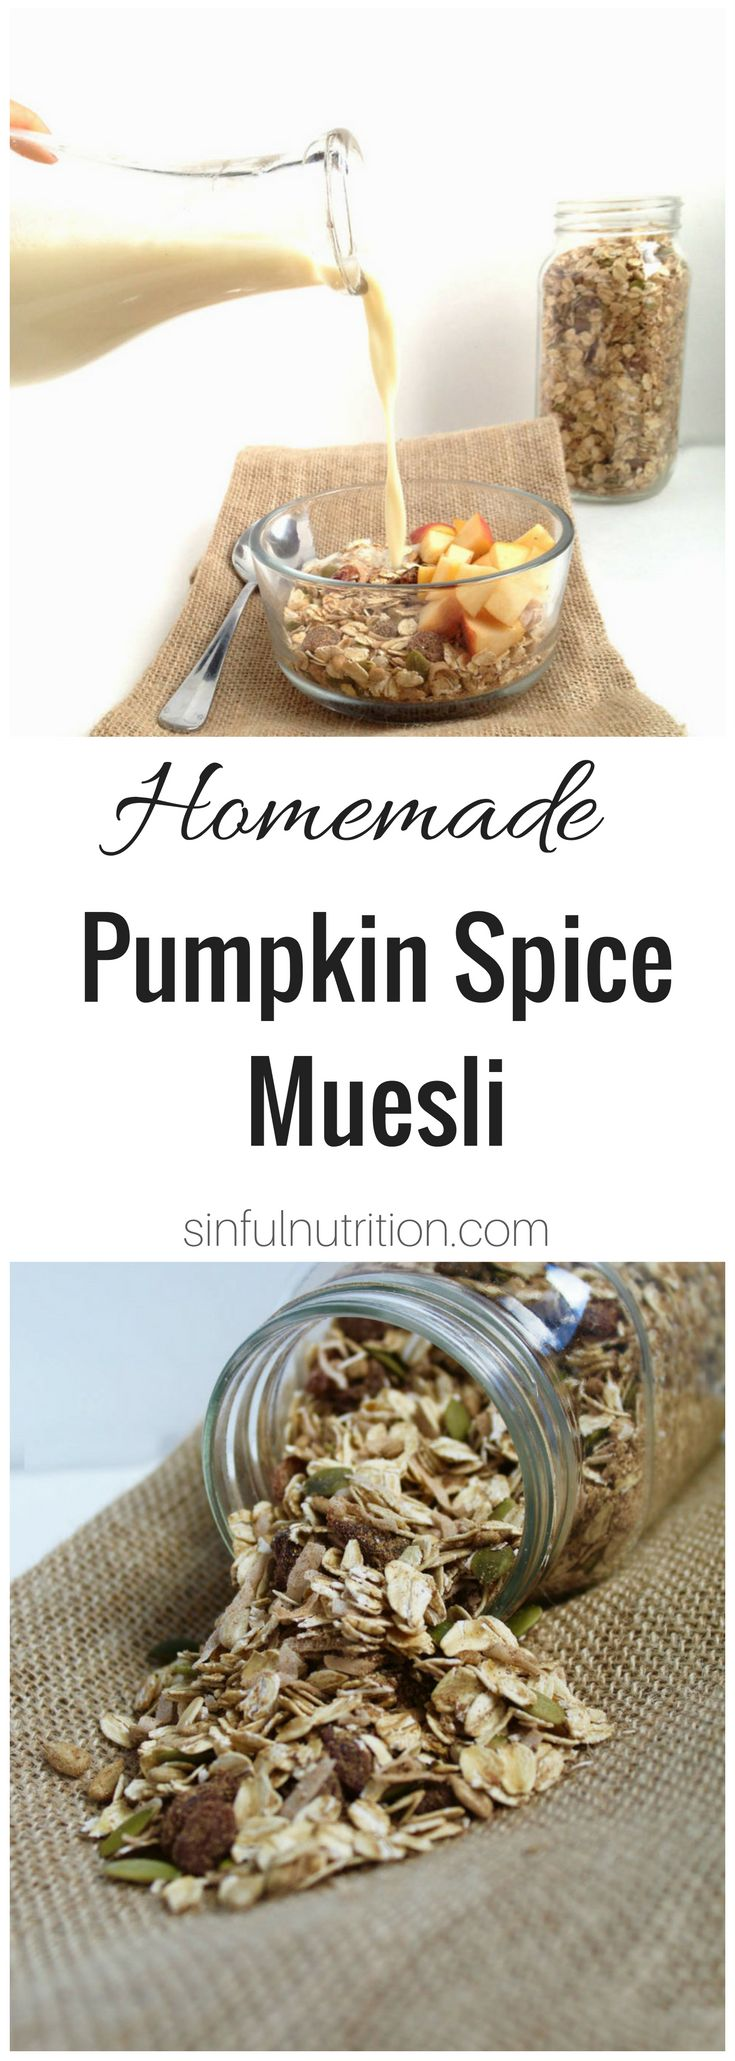 Pumpkin Spice Homemade Muesli Recipe -- A healthy no-cook breakfast made with oats, pumpkin seeds, coconut , and pumpkin pie spice. Perfect for fall! | @sinfulnutrition www.sinfulnutrition.com